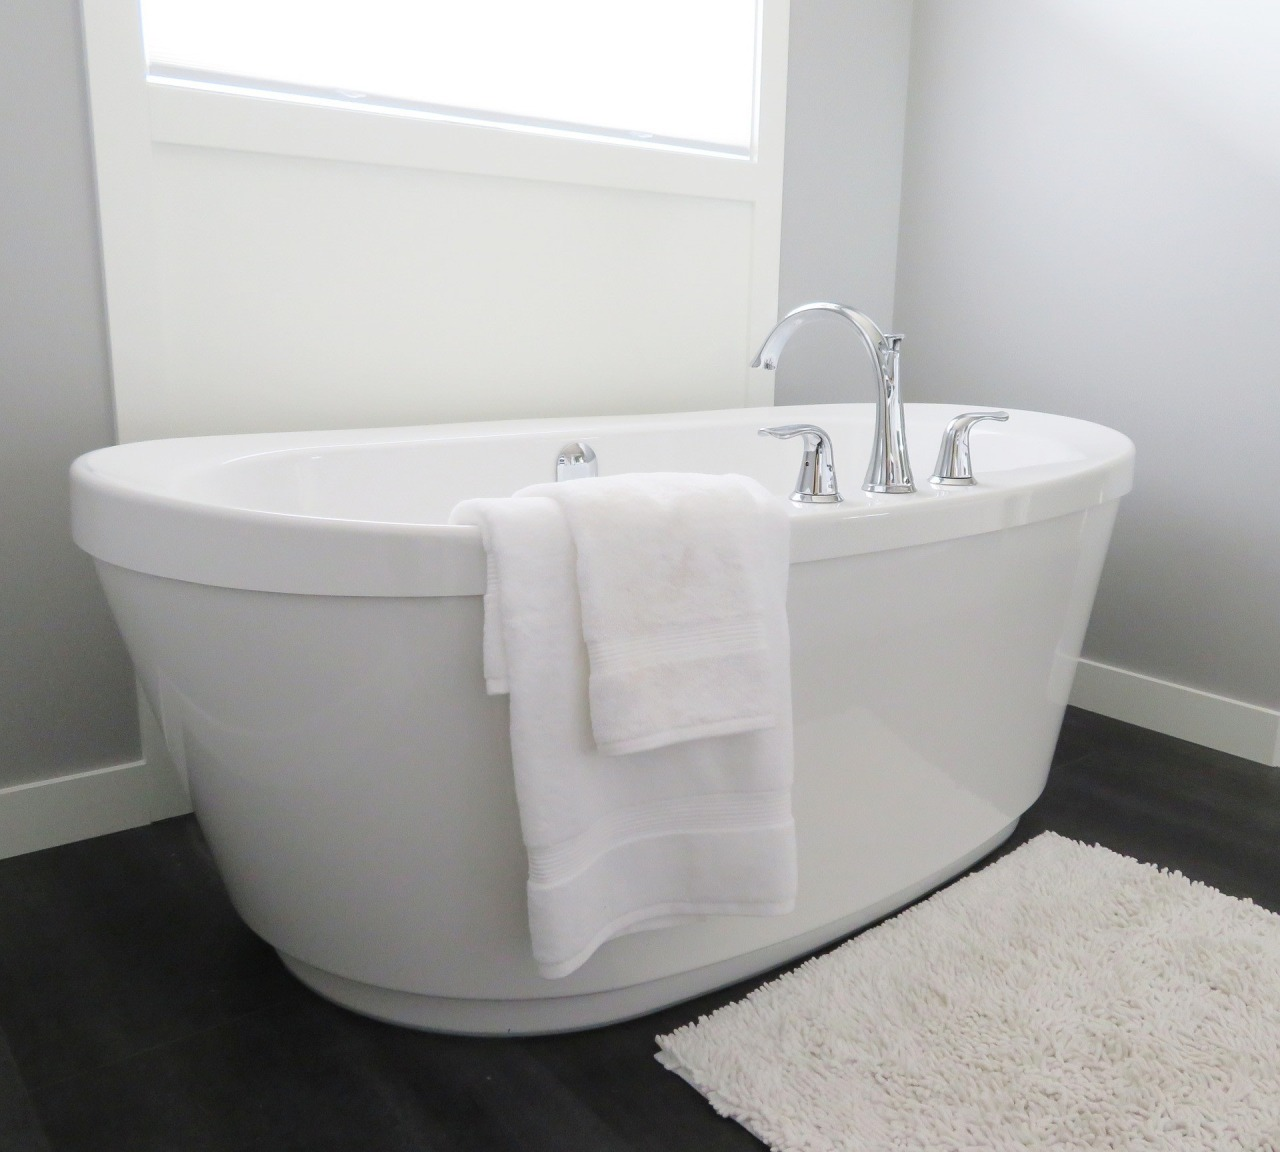 A new bathtub could completely change the look angle, bathroom, bathroom accessory, bathroom cabinet, bathroom sink, bathtub, bidet, plumbing fixture, product, product design, tap, toilet seat, gray, white